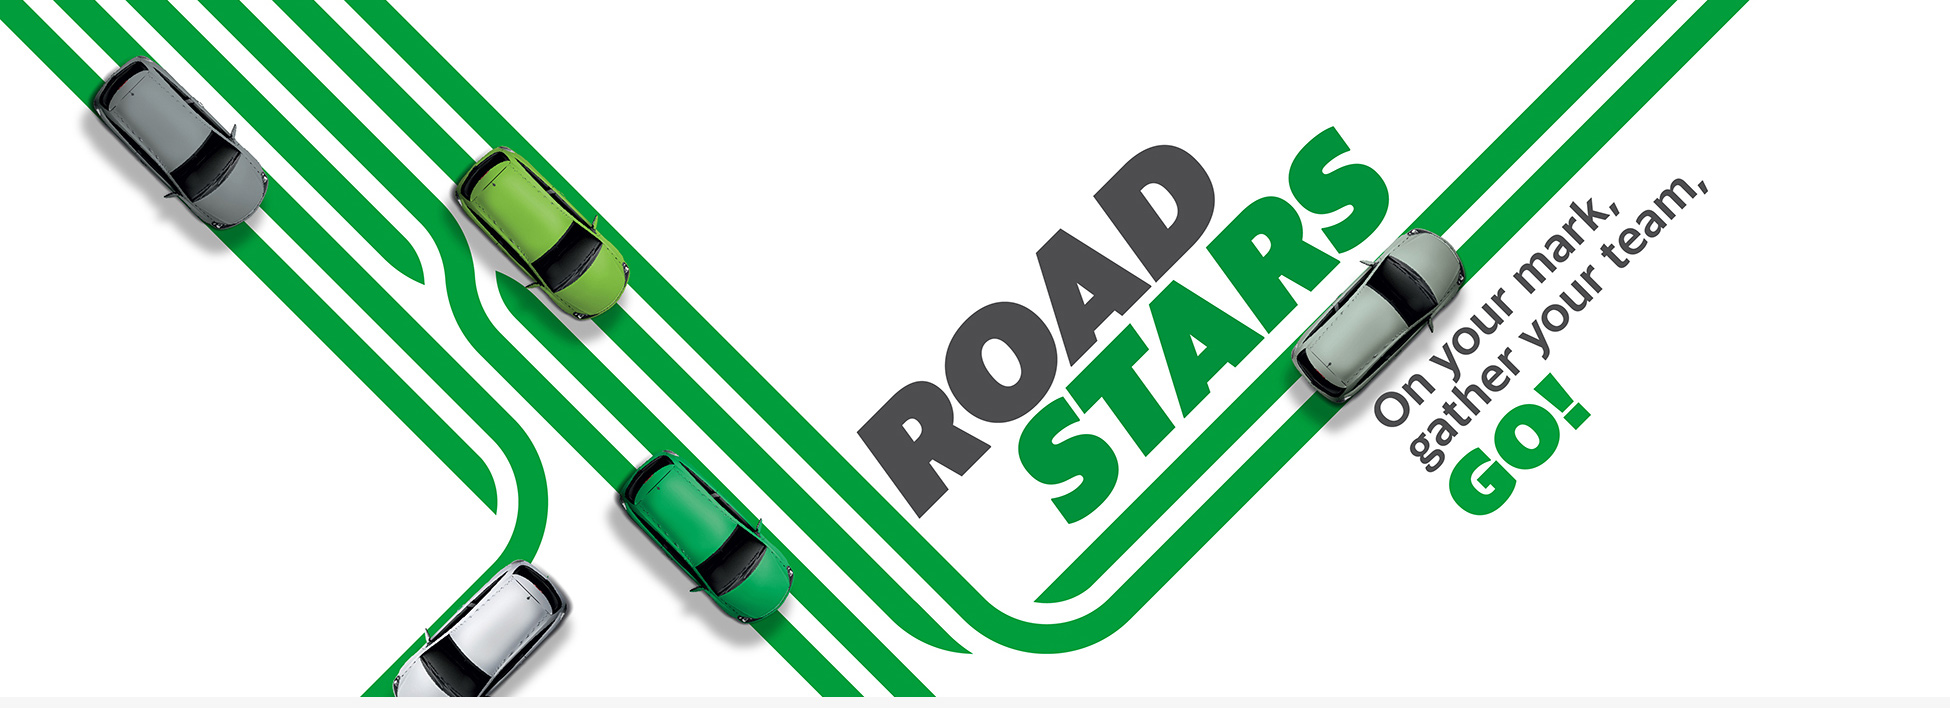 RoadStars_BlogPostHeader_1950x700_v4